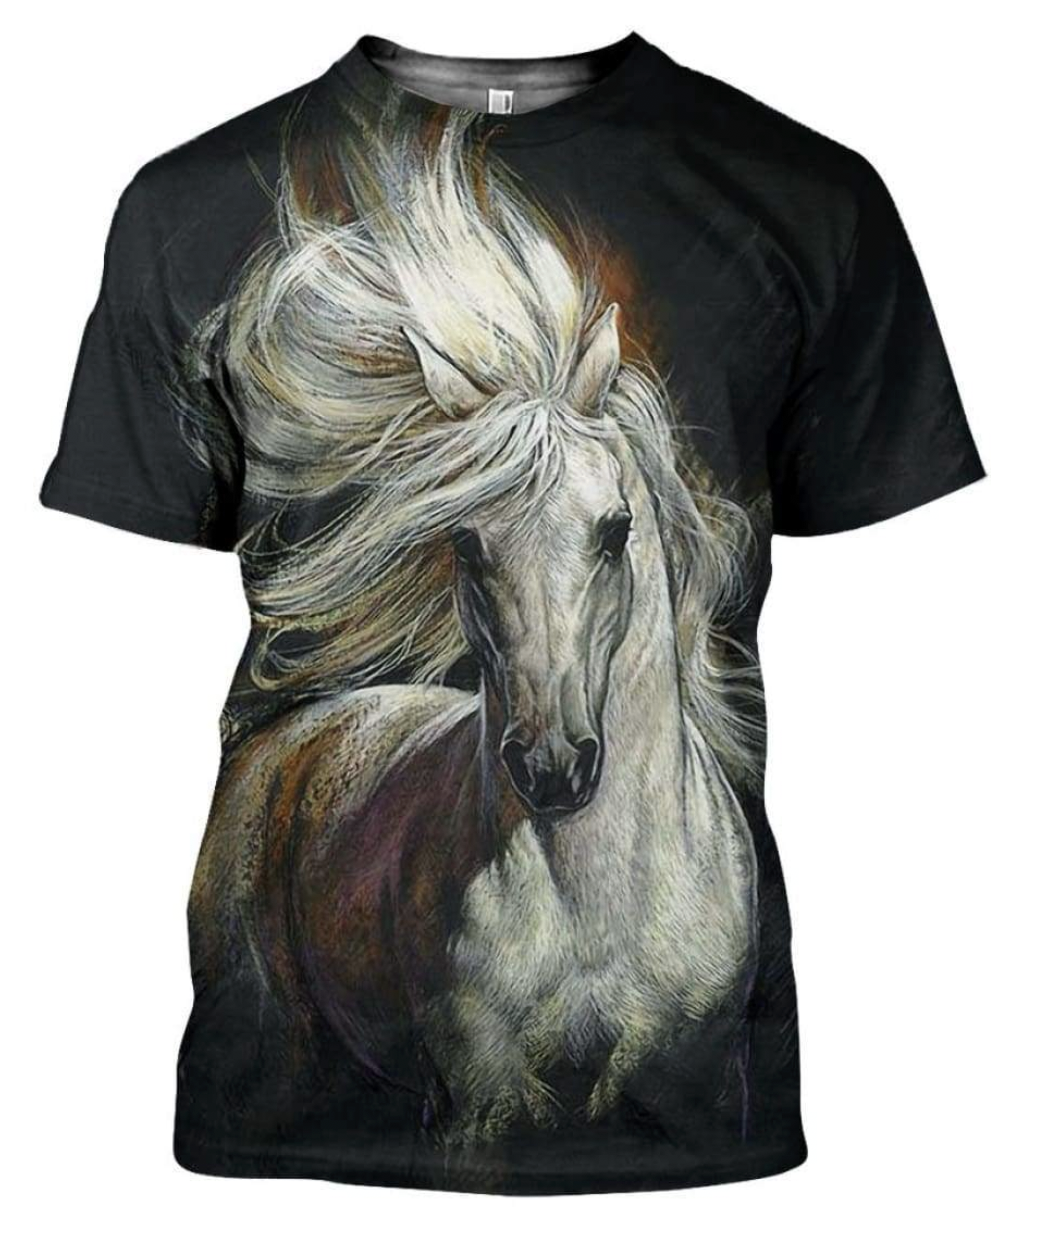 Arabian White Horse 3D Printed T-Shirt